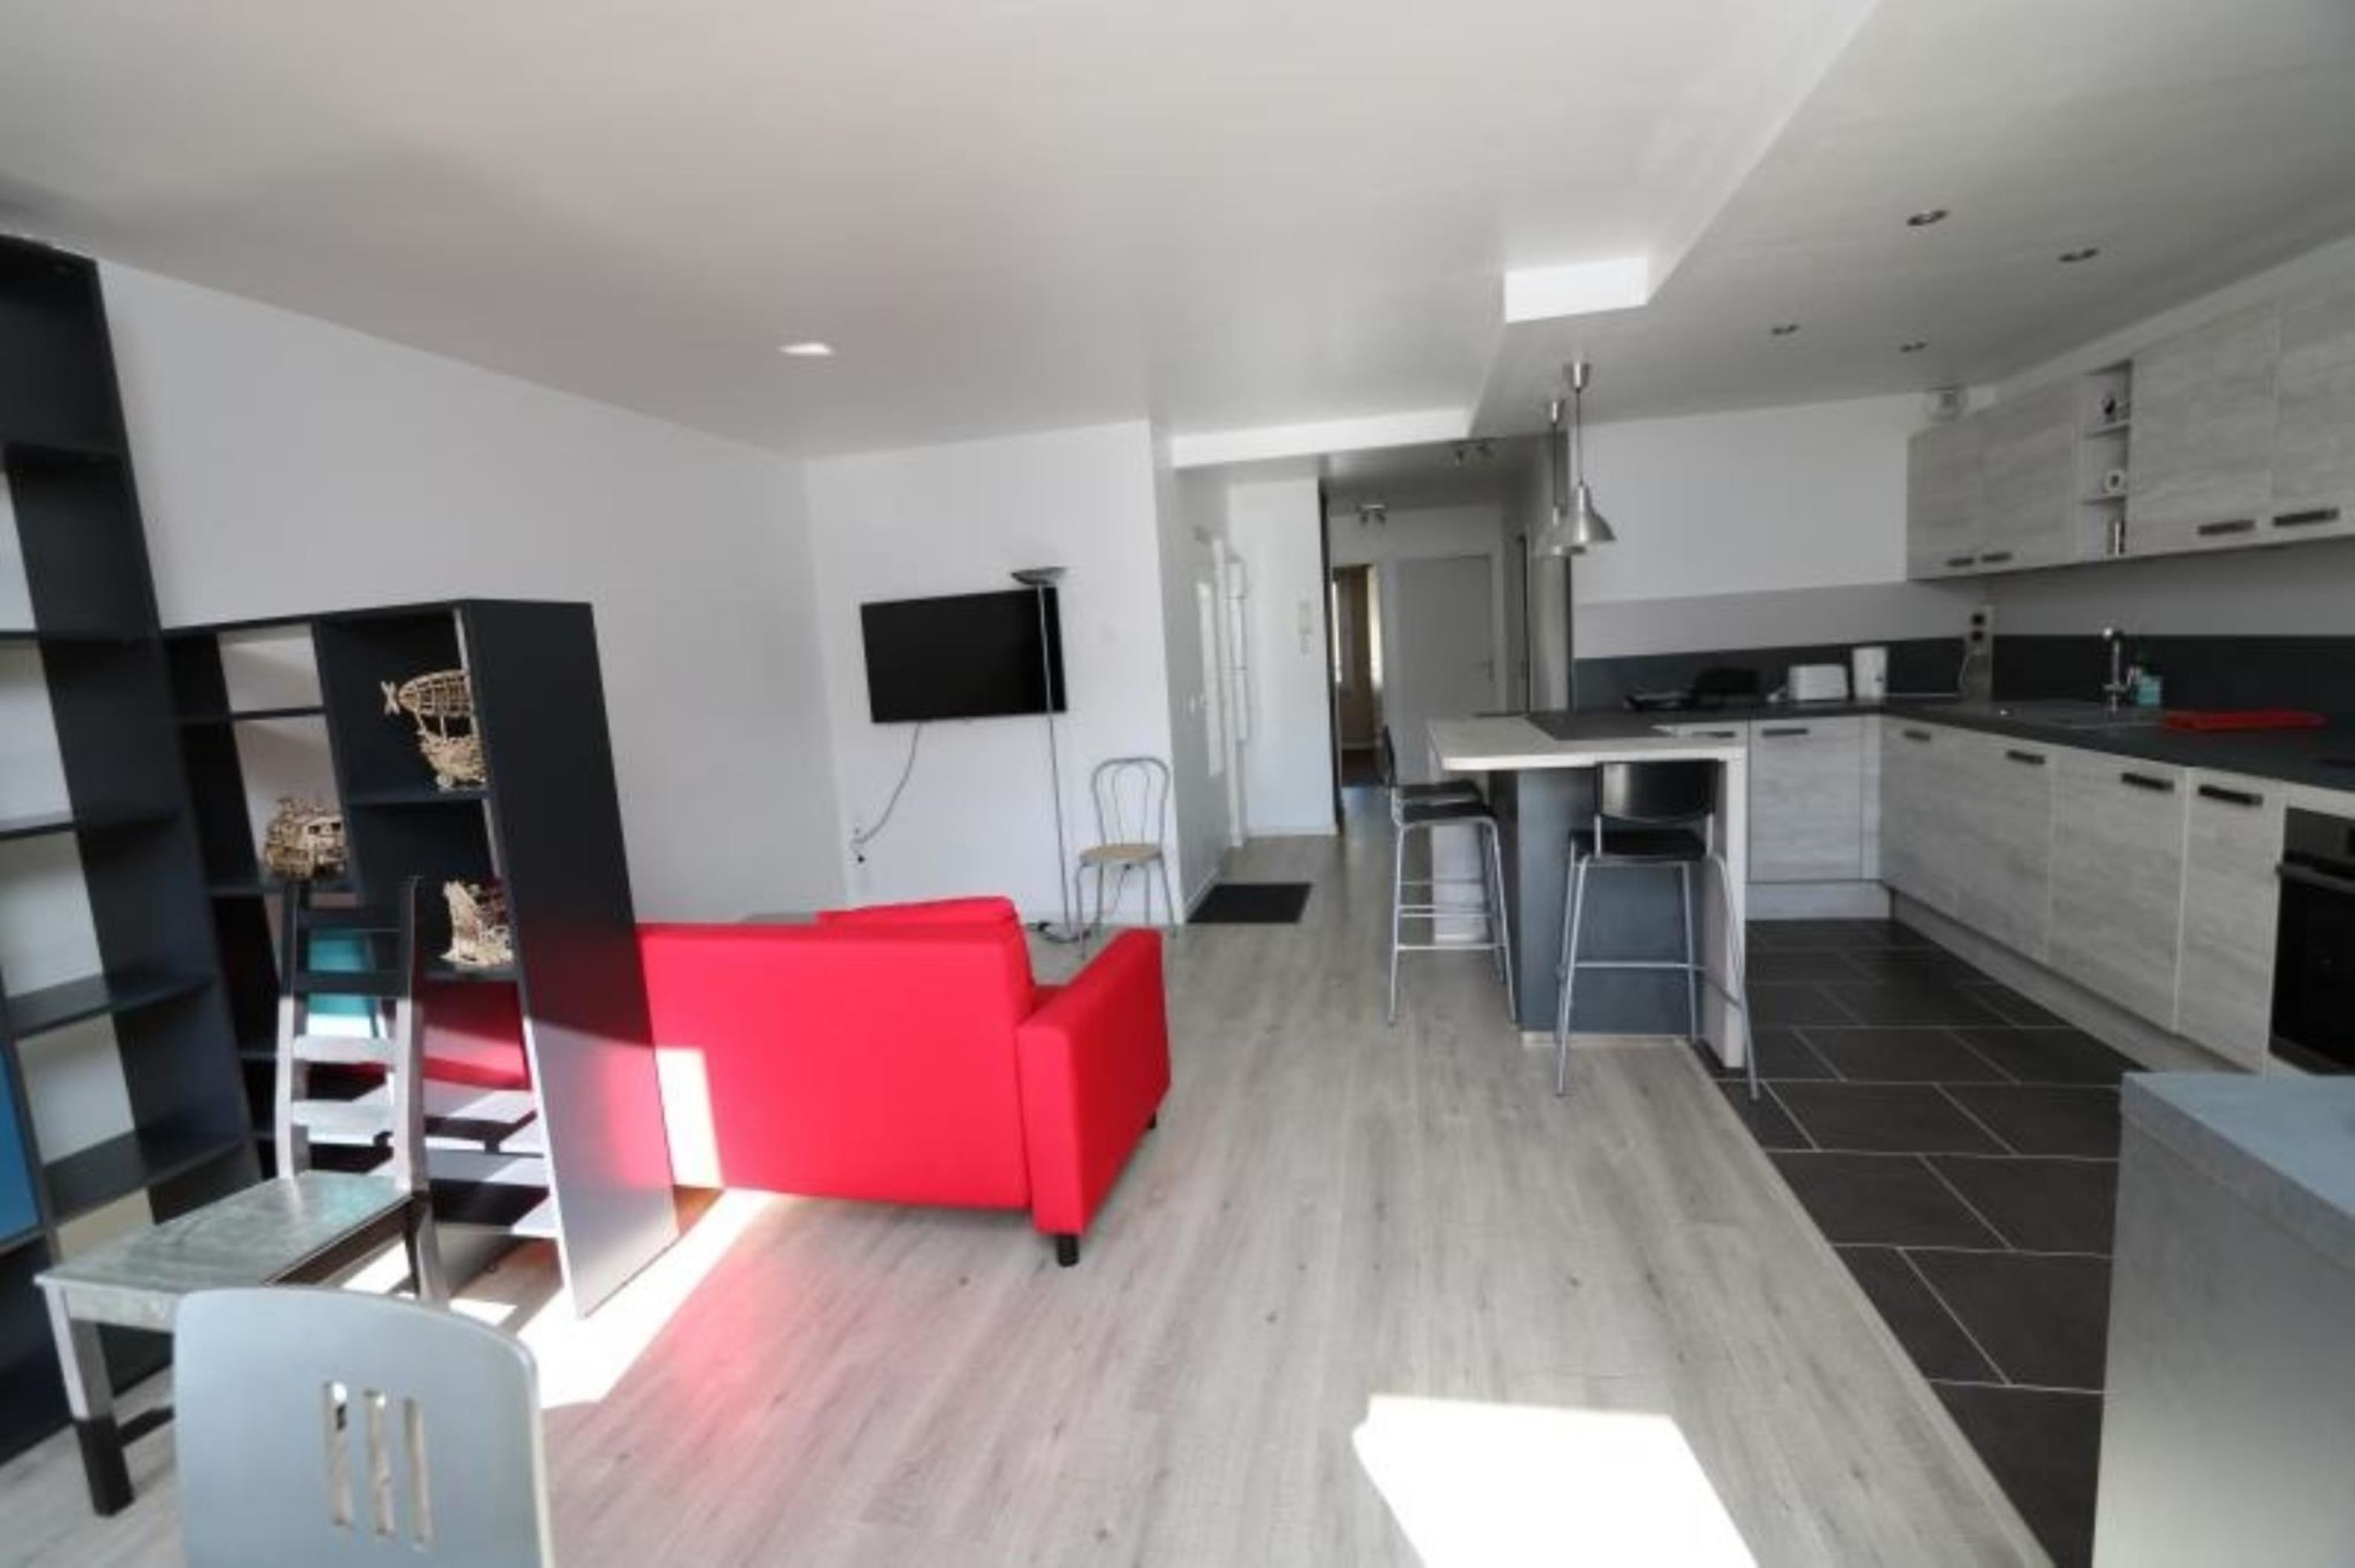 agence immobilière sevres 92 le chesnay 78 achat vente location appartement maison immobilier LMHT ANF HIHJEWLP